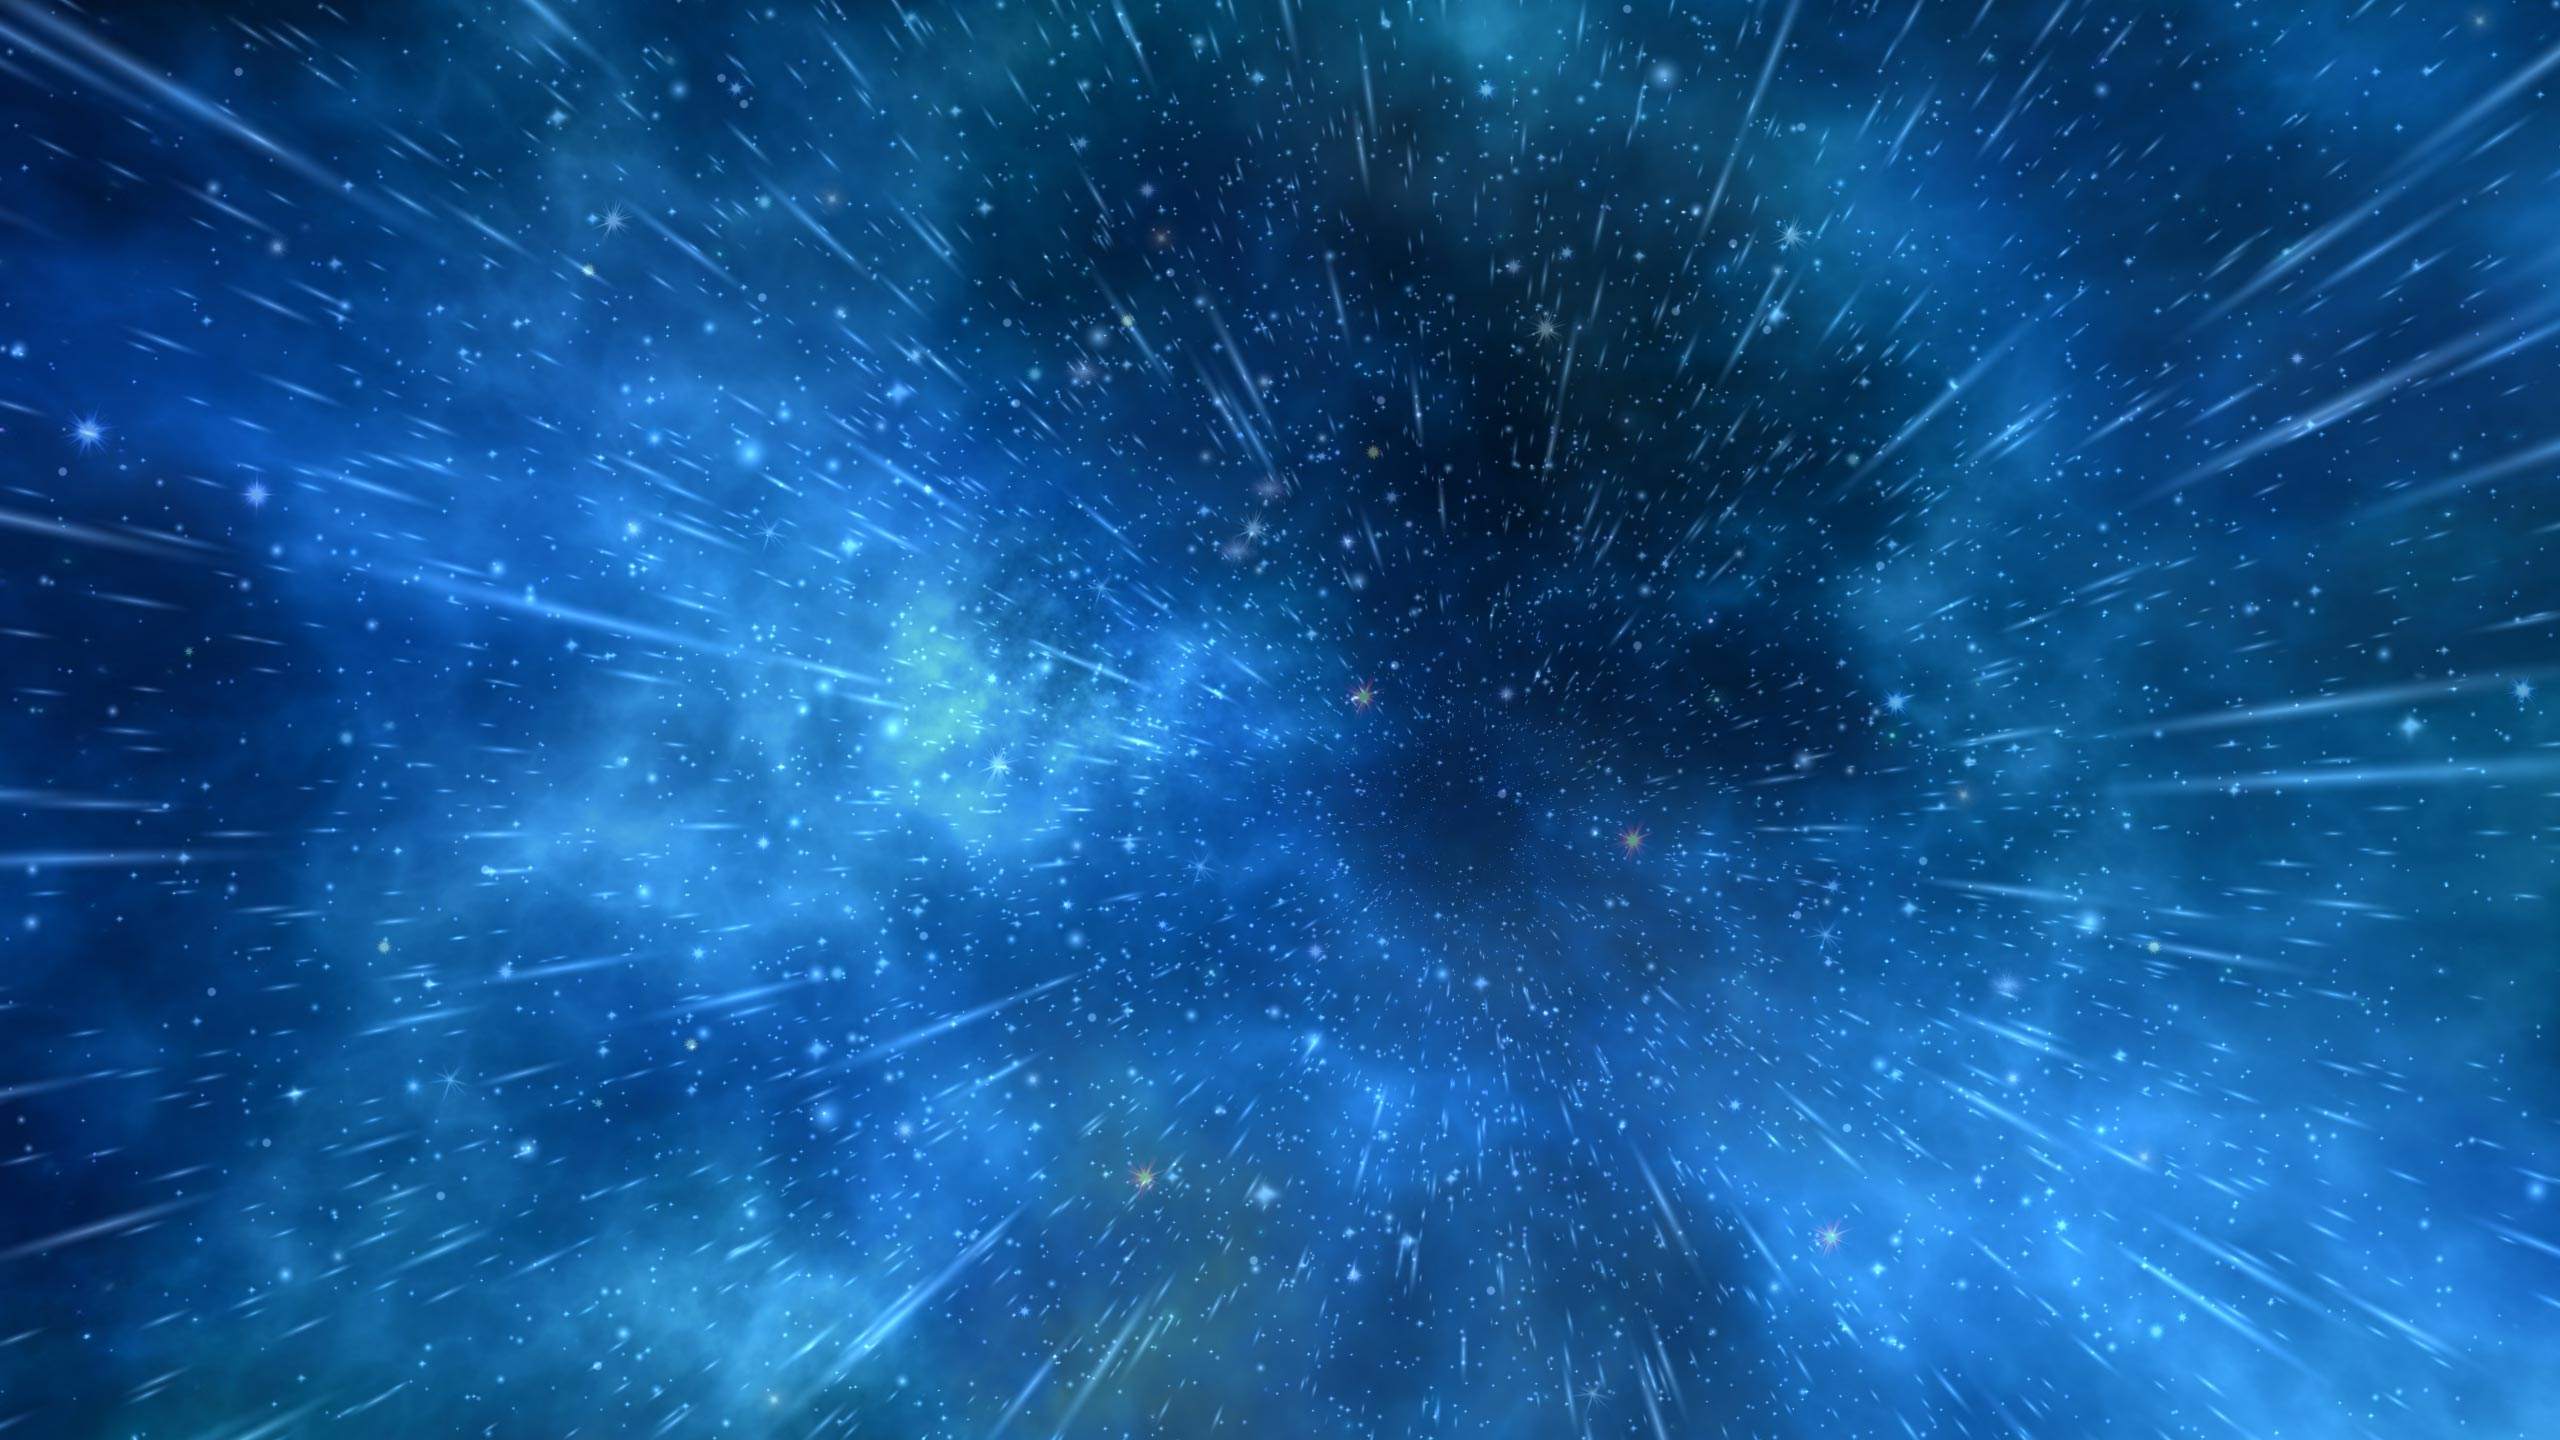 Beautiful-Space-3D-Animated-Desktop-Background.jpg